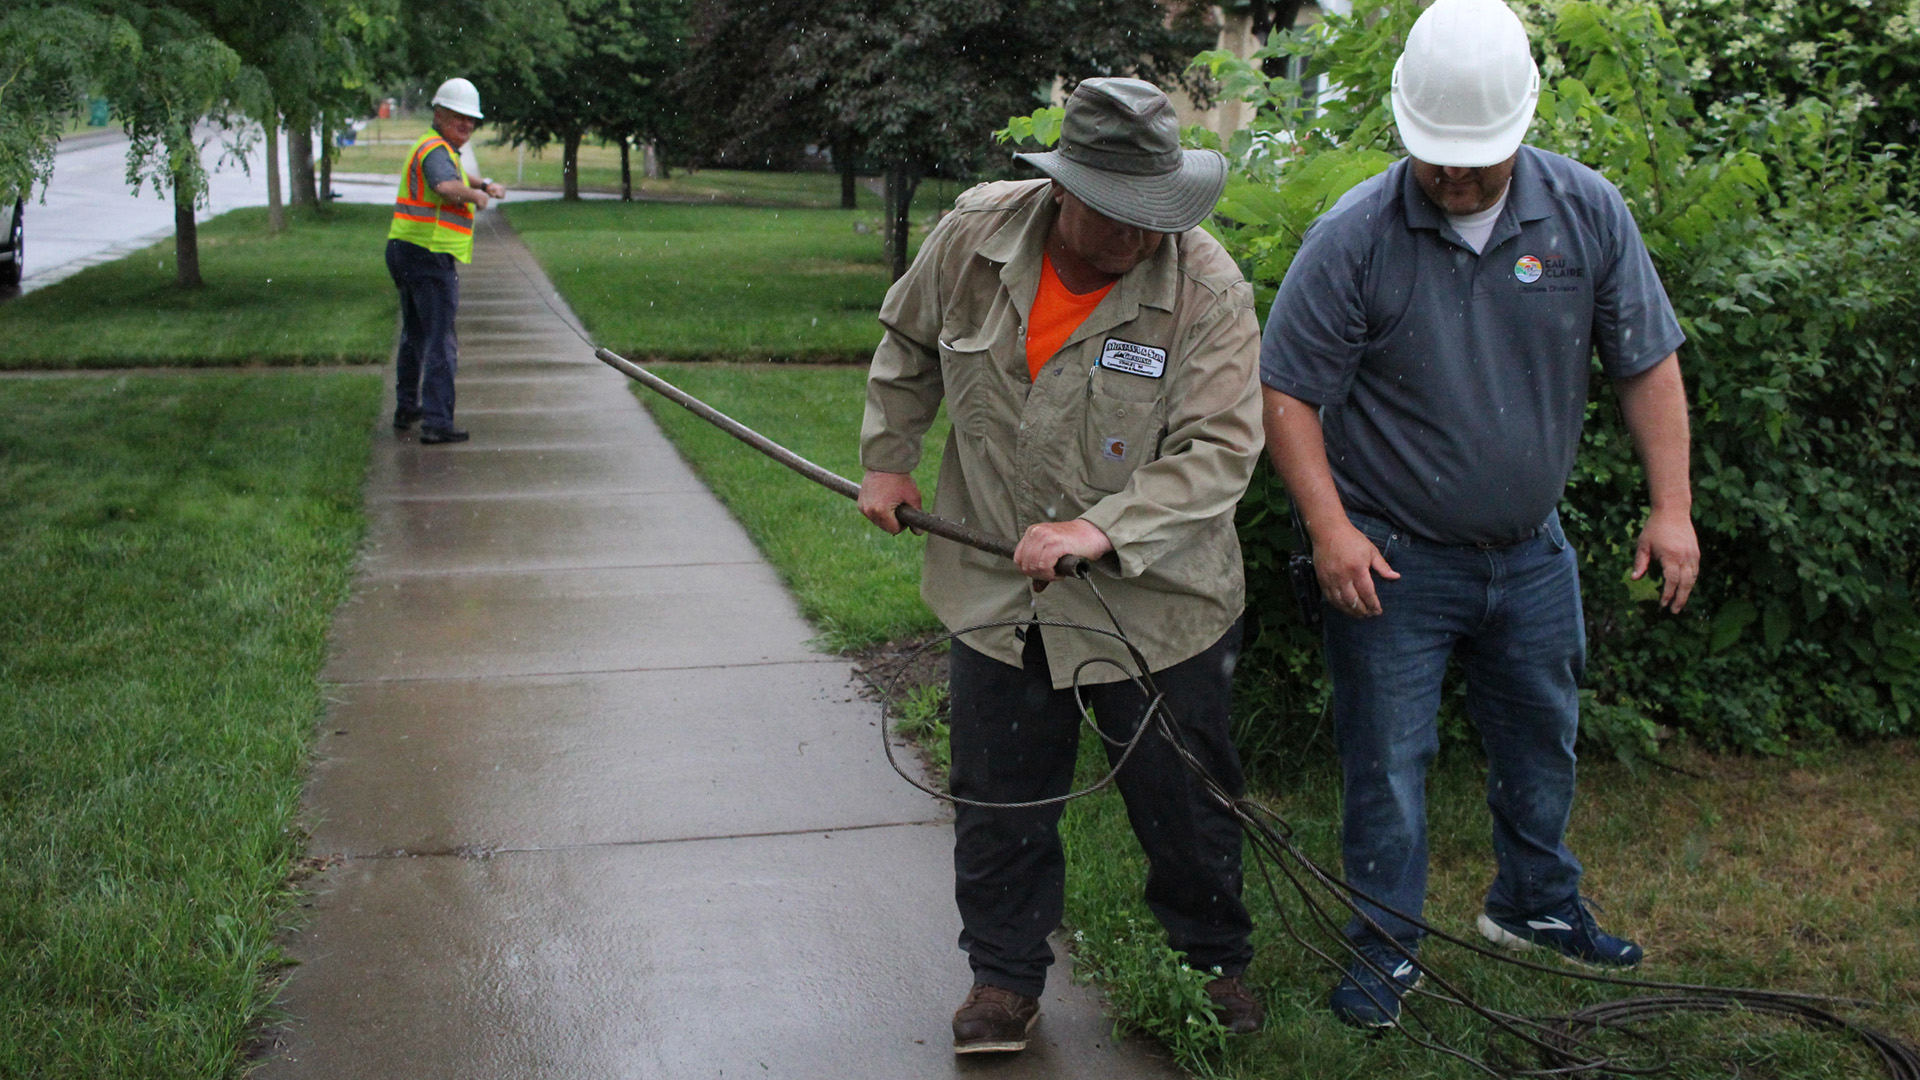 Workers stand on a sidewalk and lawn holding a lead pipe and cords.